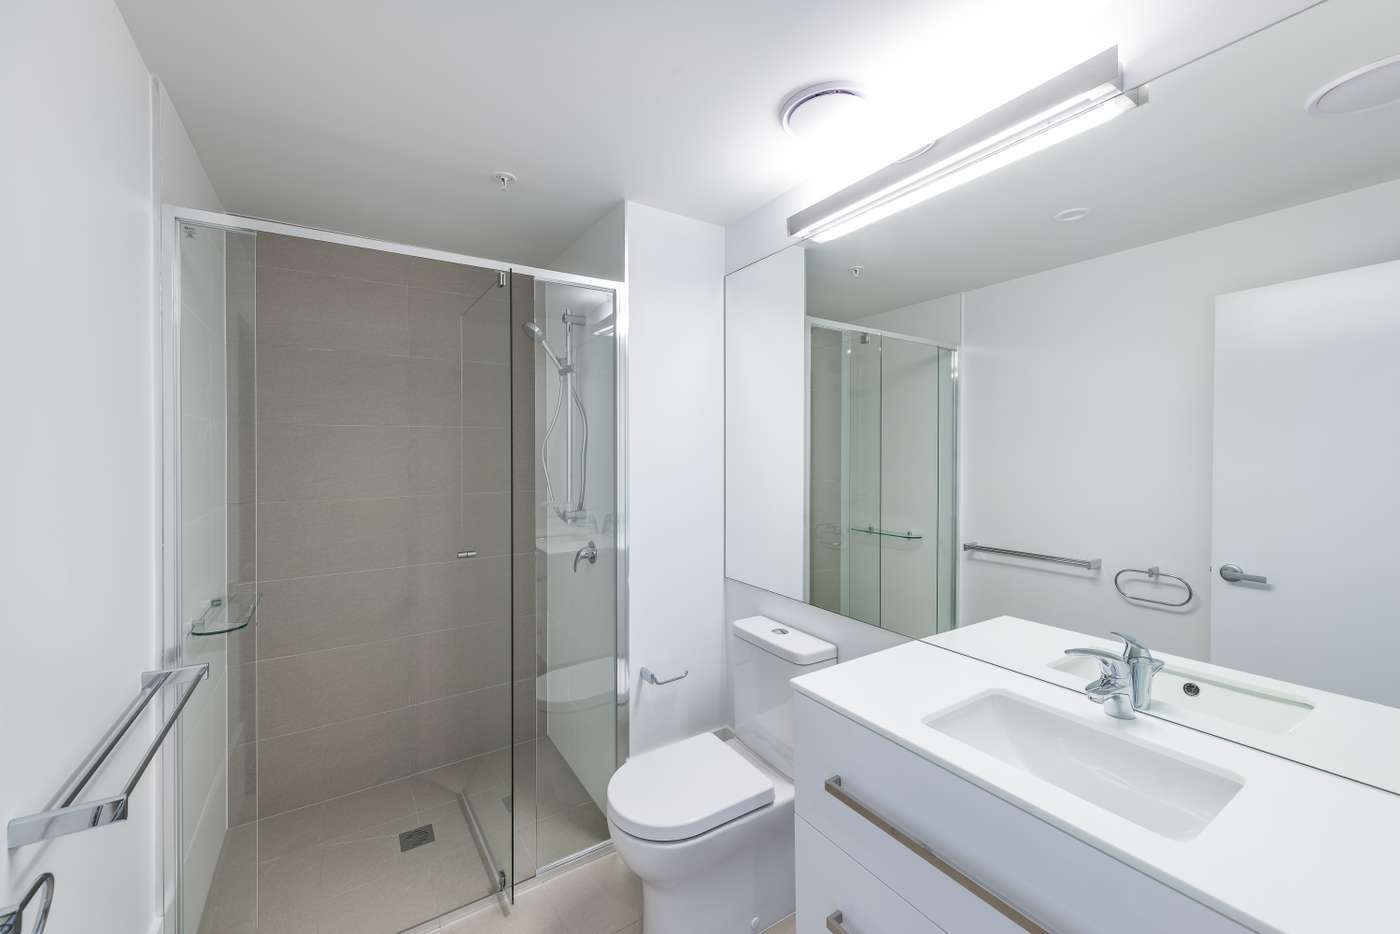 Fifth view of Homely apartment listing, 21111/300 Old Cleveland Road, Coorparoo QLD 4151